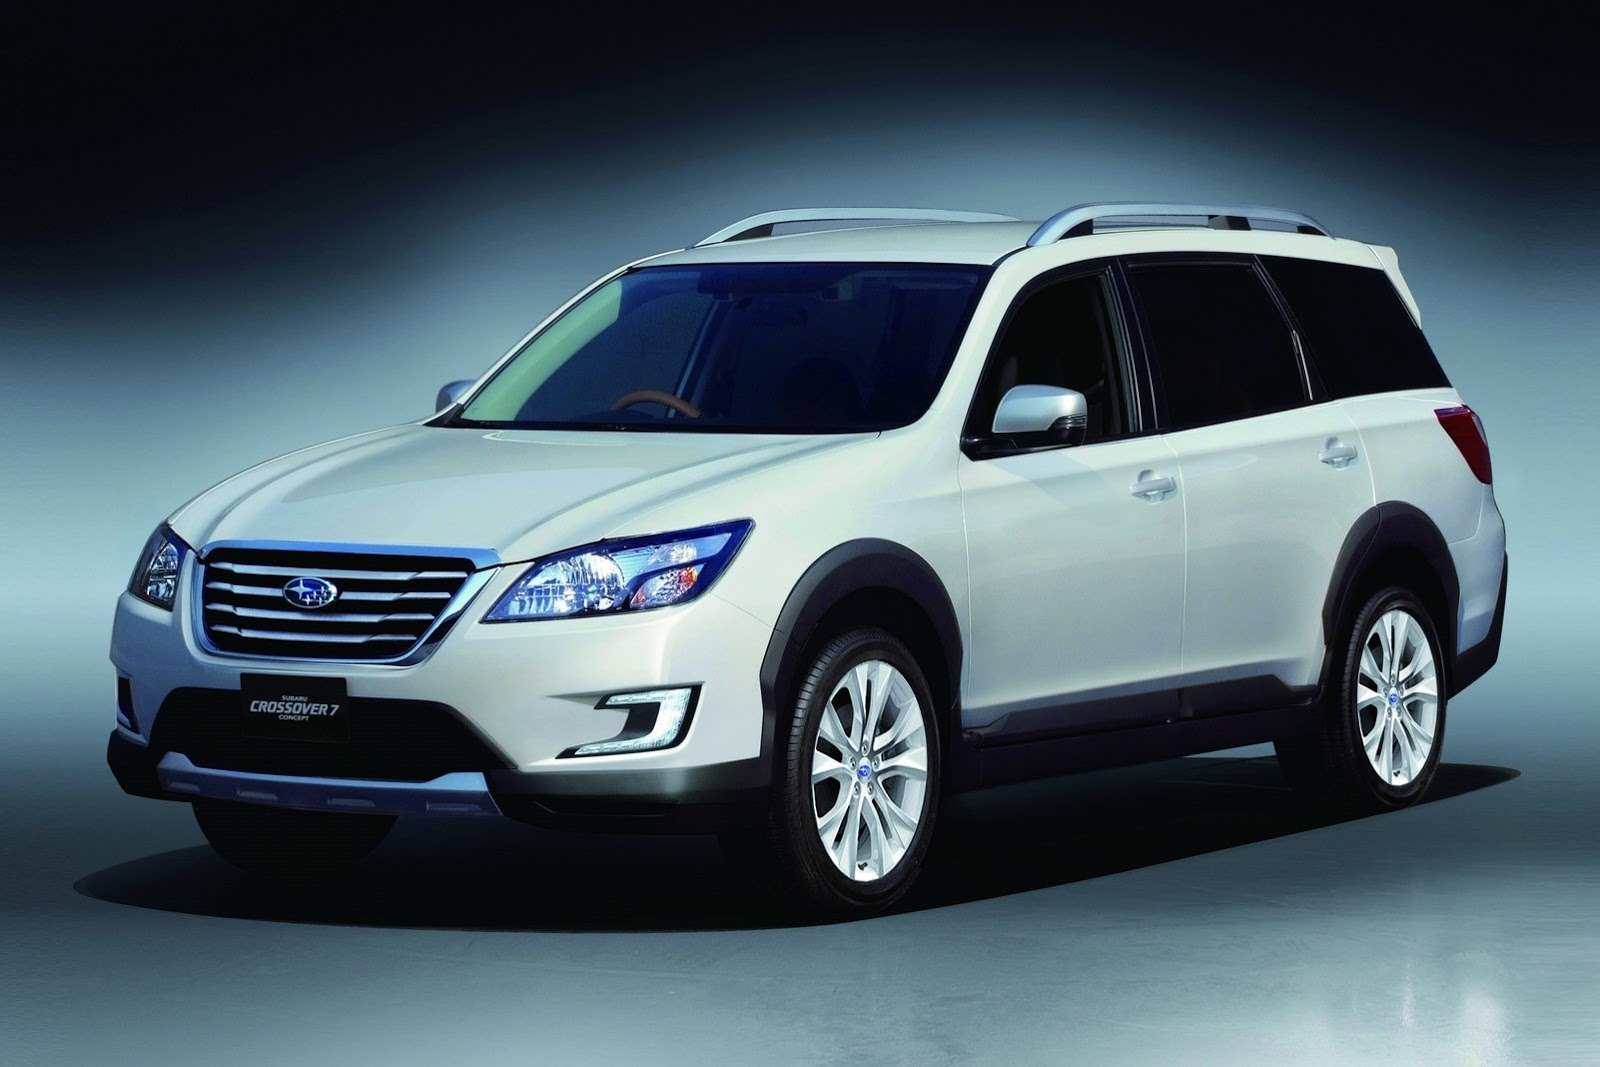 69 Gallery of Subaru Tribeca Concept Redesign and Concept with Subaru Tribeca Concept